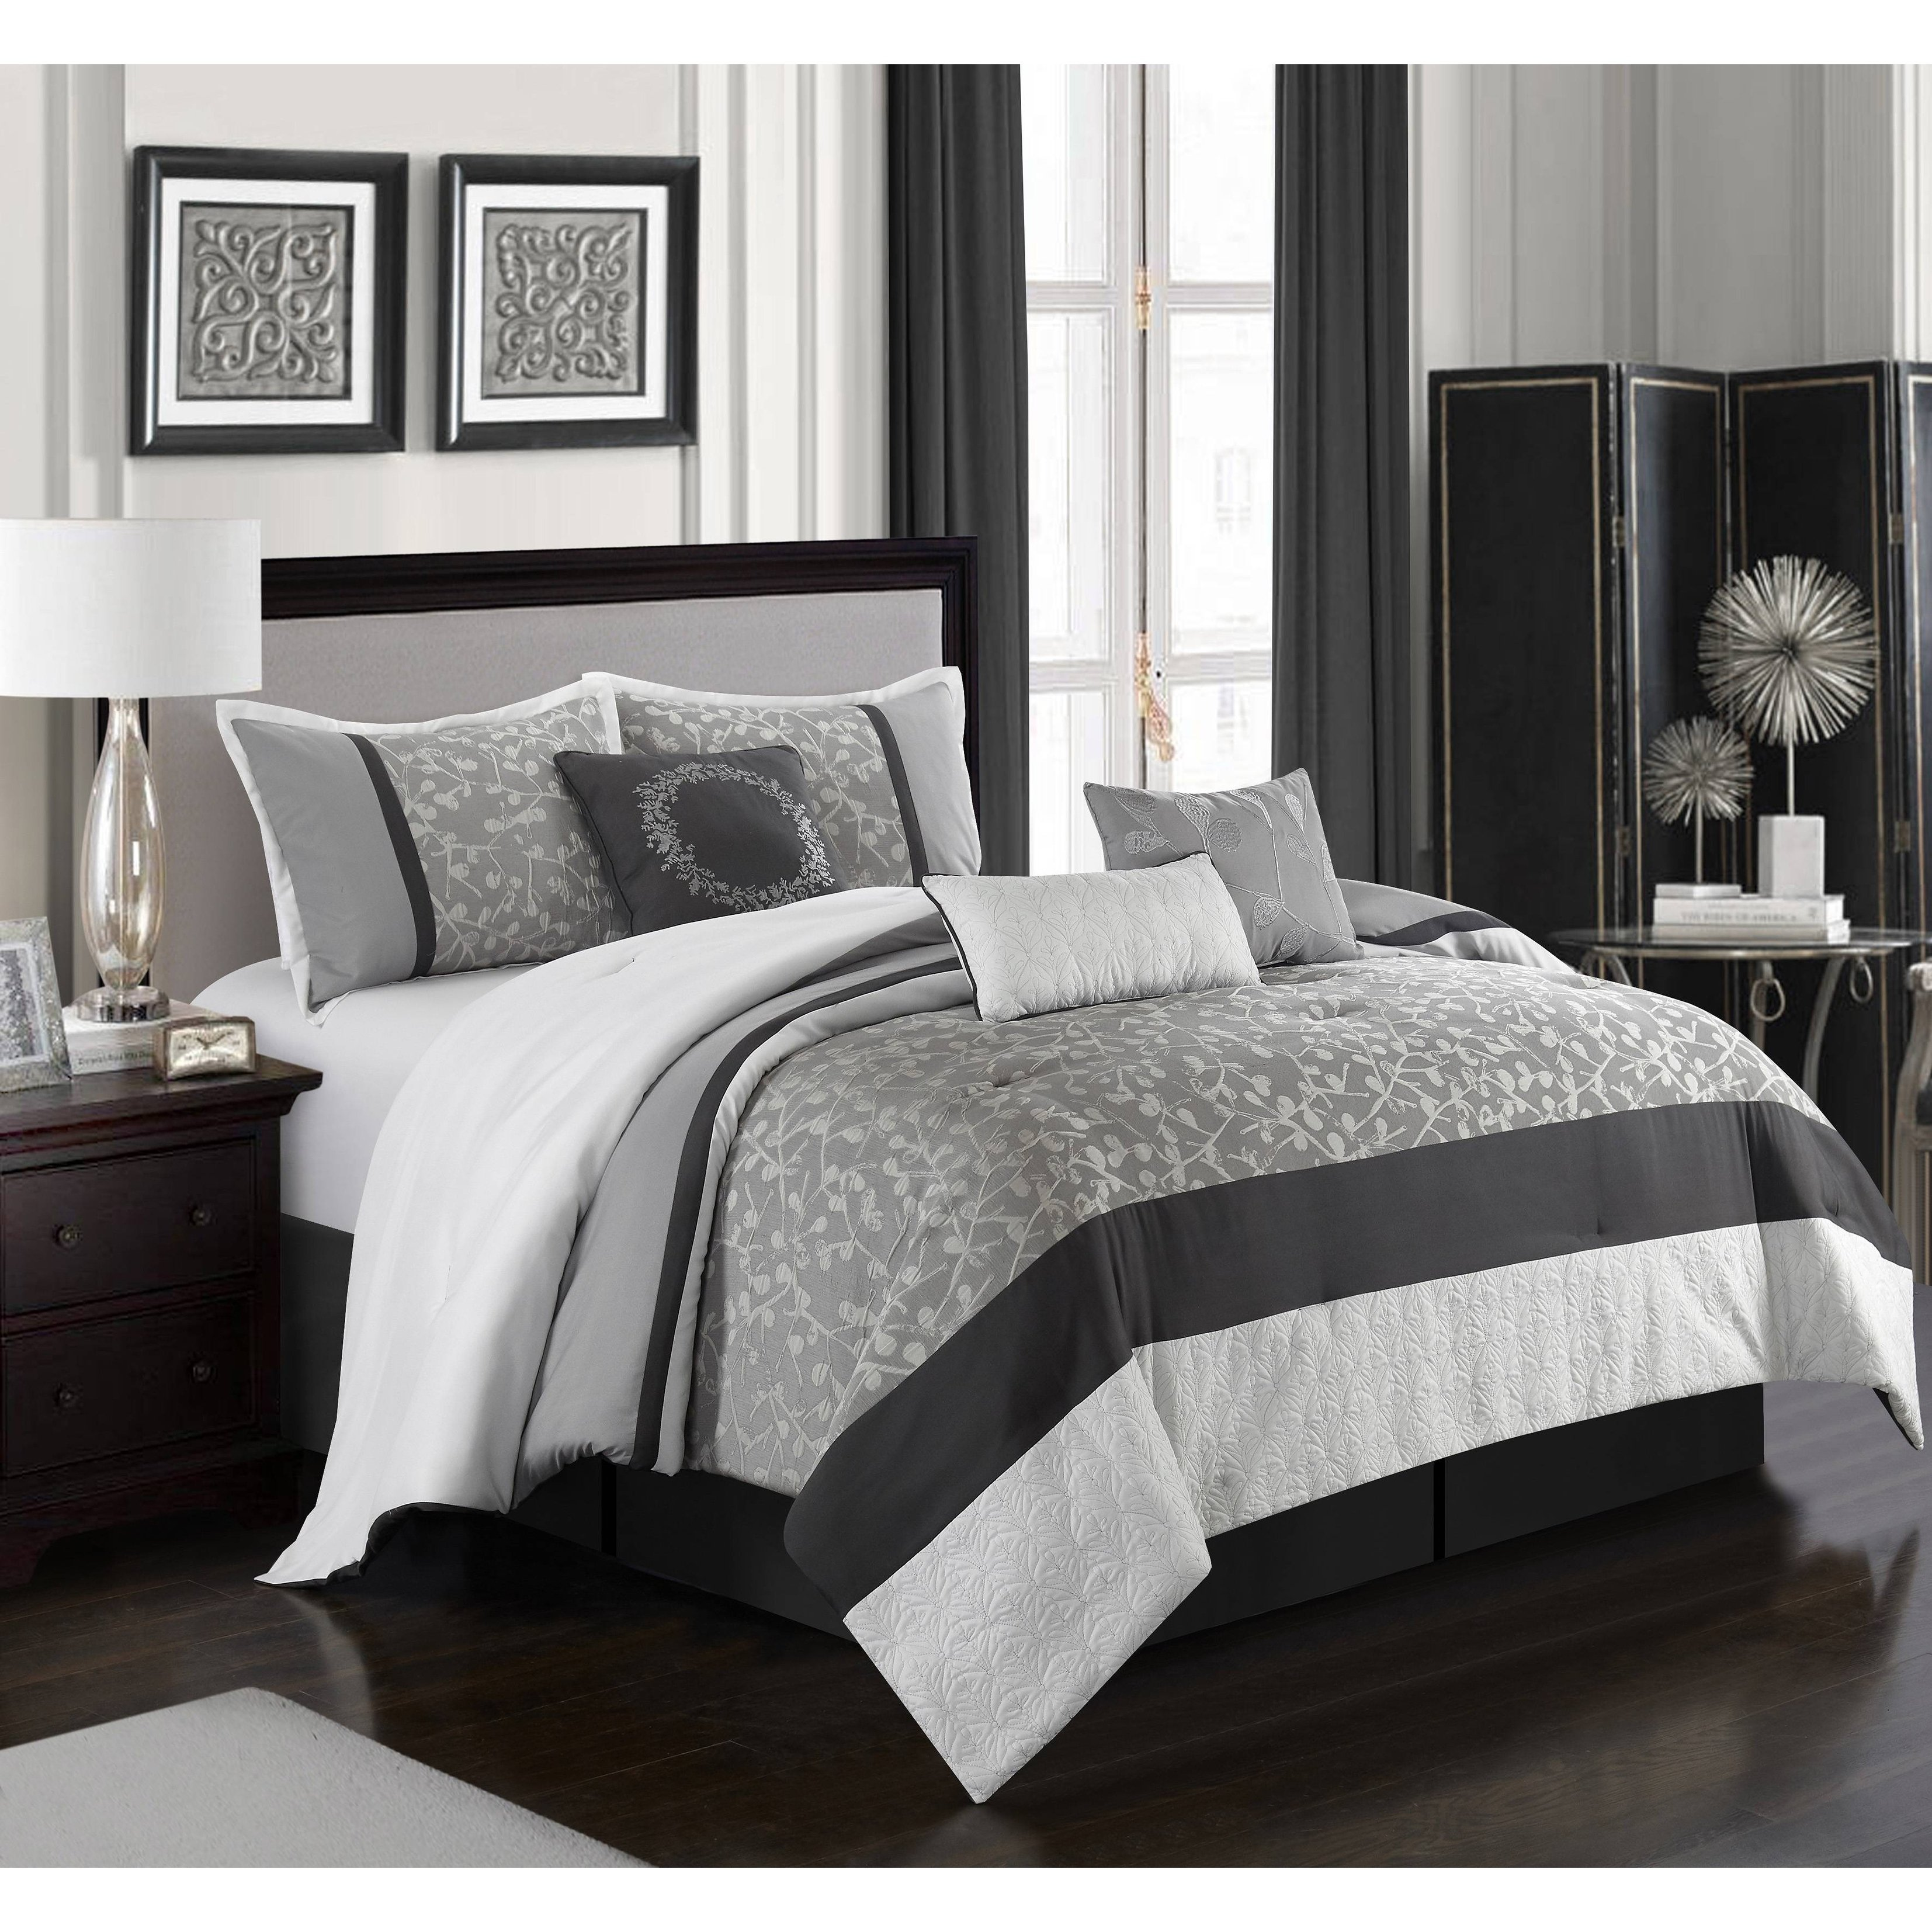 New Queen Size Comforter Set 8 Piece Red Wine And White Bedding